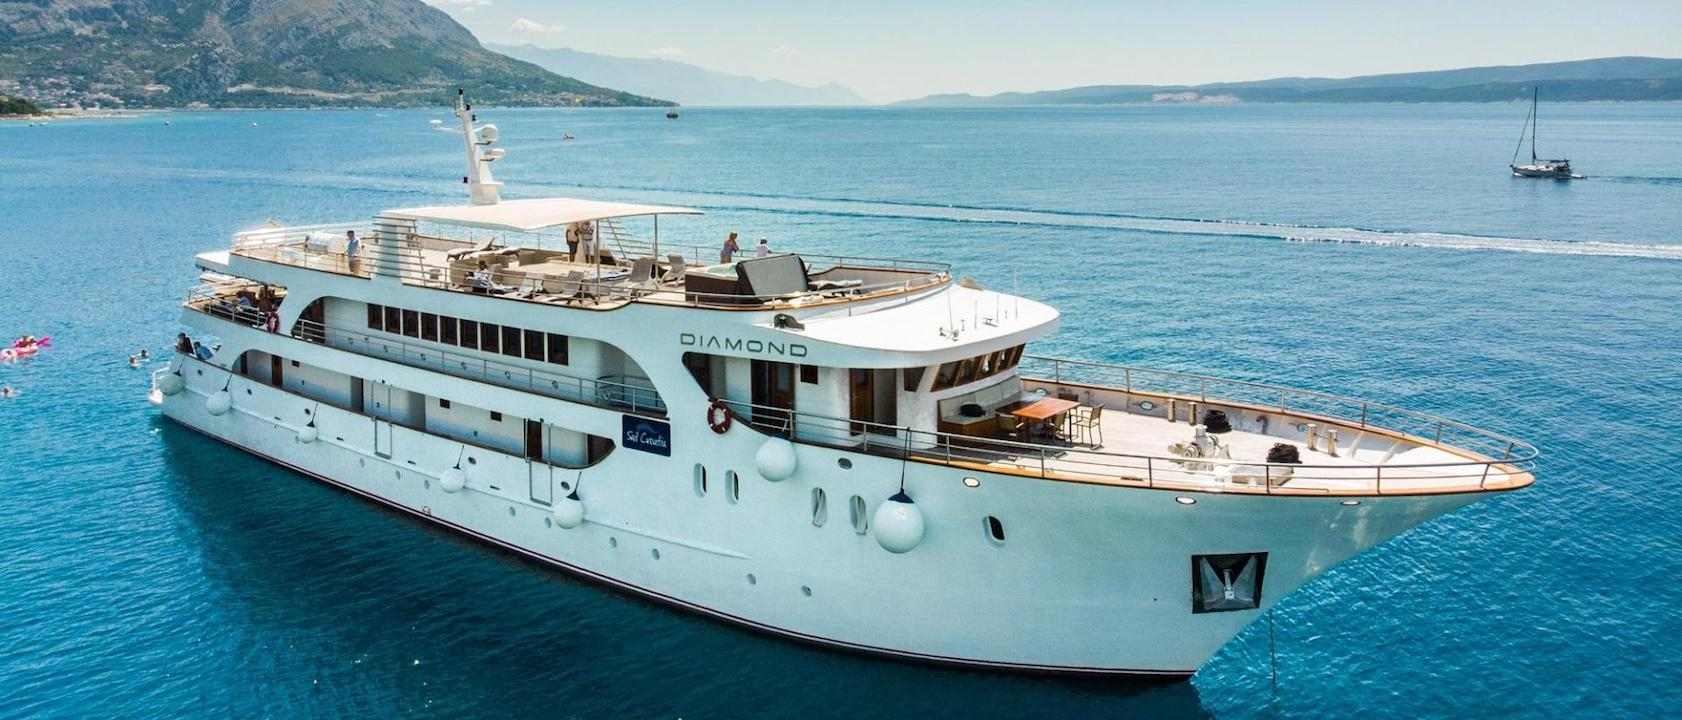 8 Day Adriatic Discovery with the MV Diamond